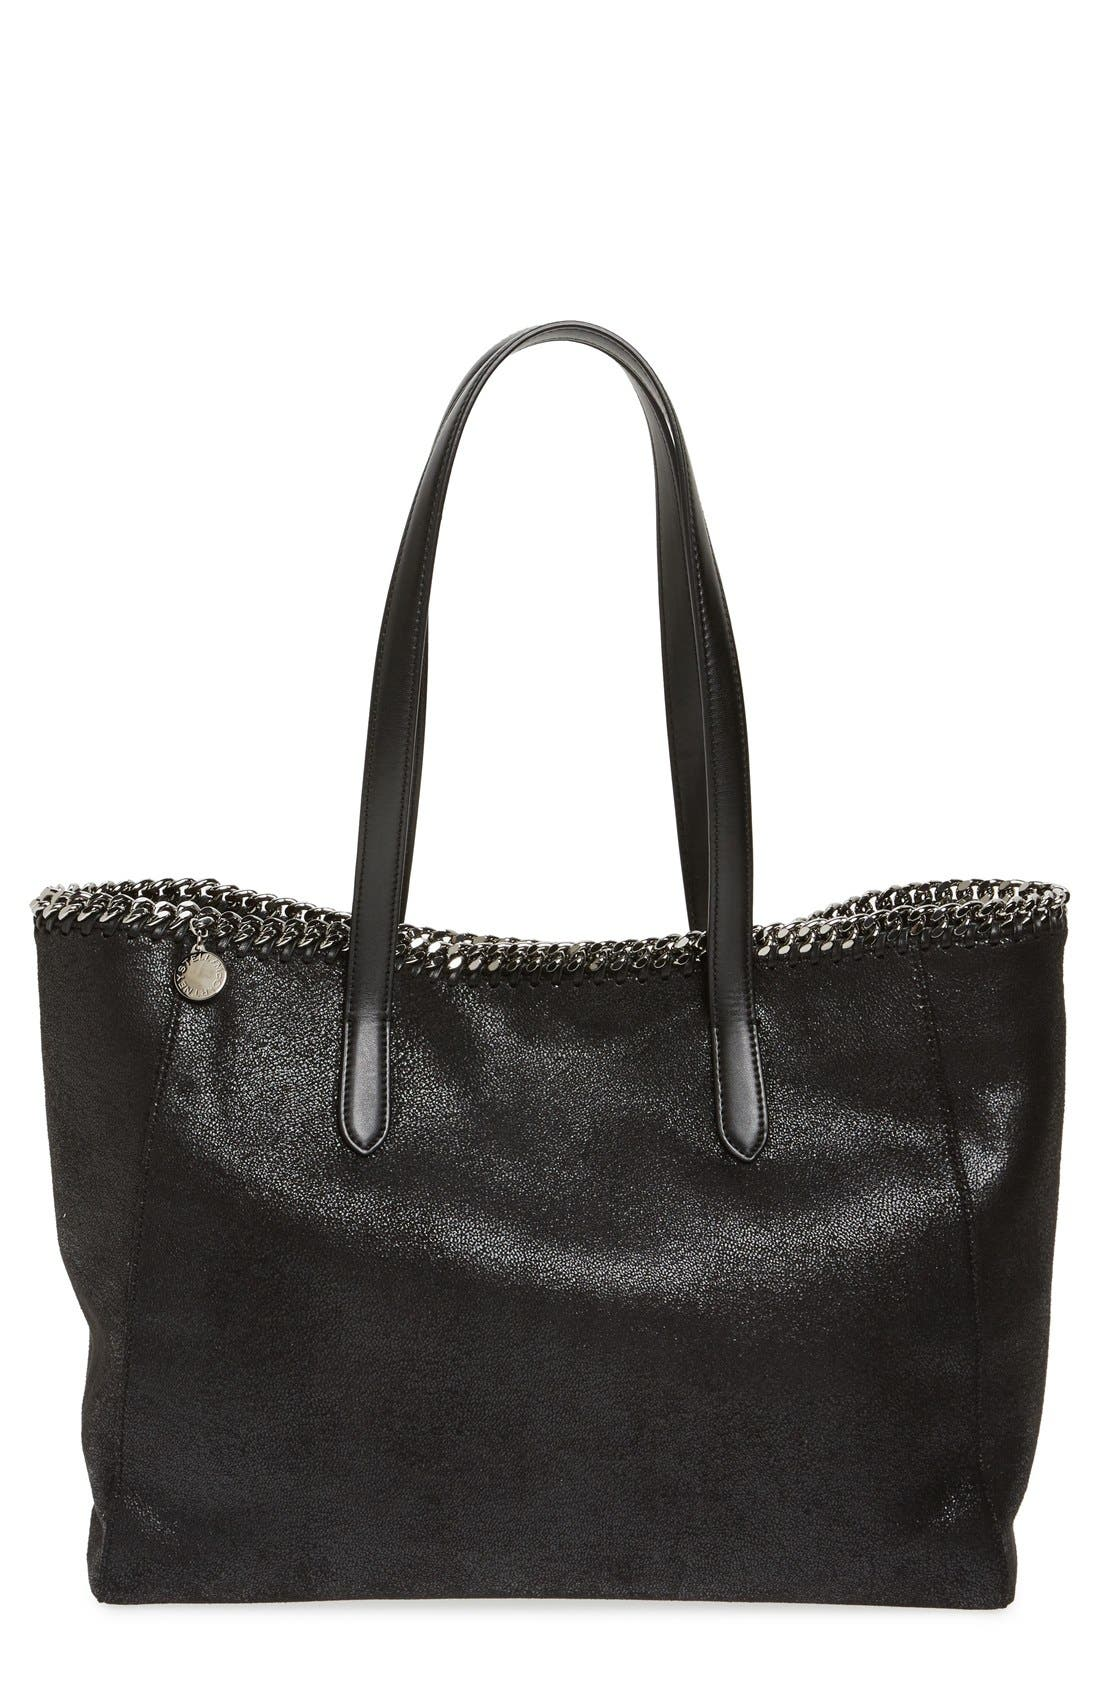 'Falabella - Shaggy Deer' Faux Leather Tote,                             Main thumbnail 1, color,                             001